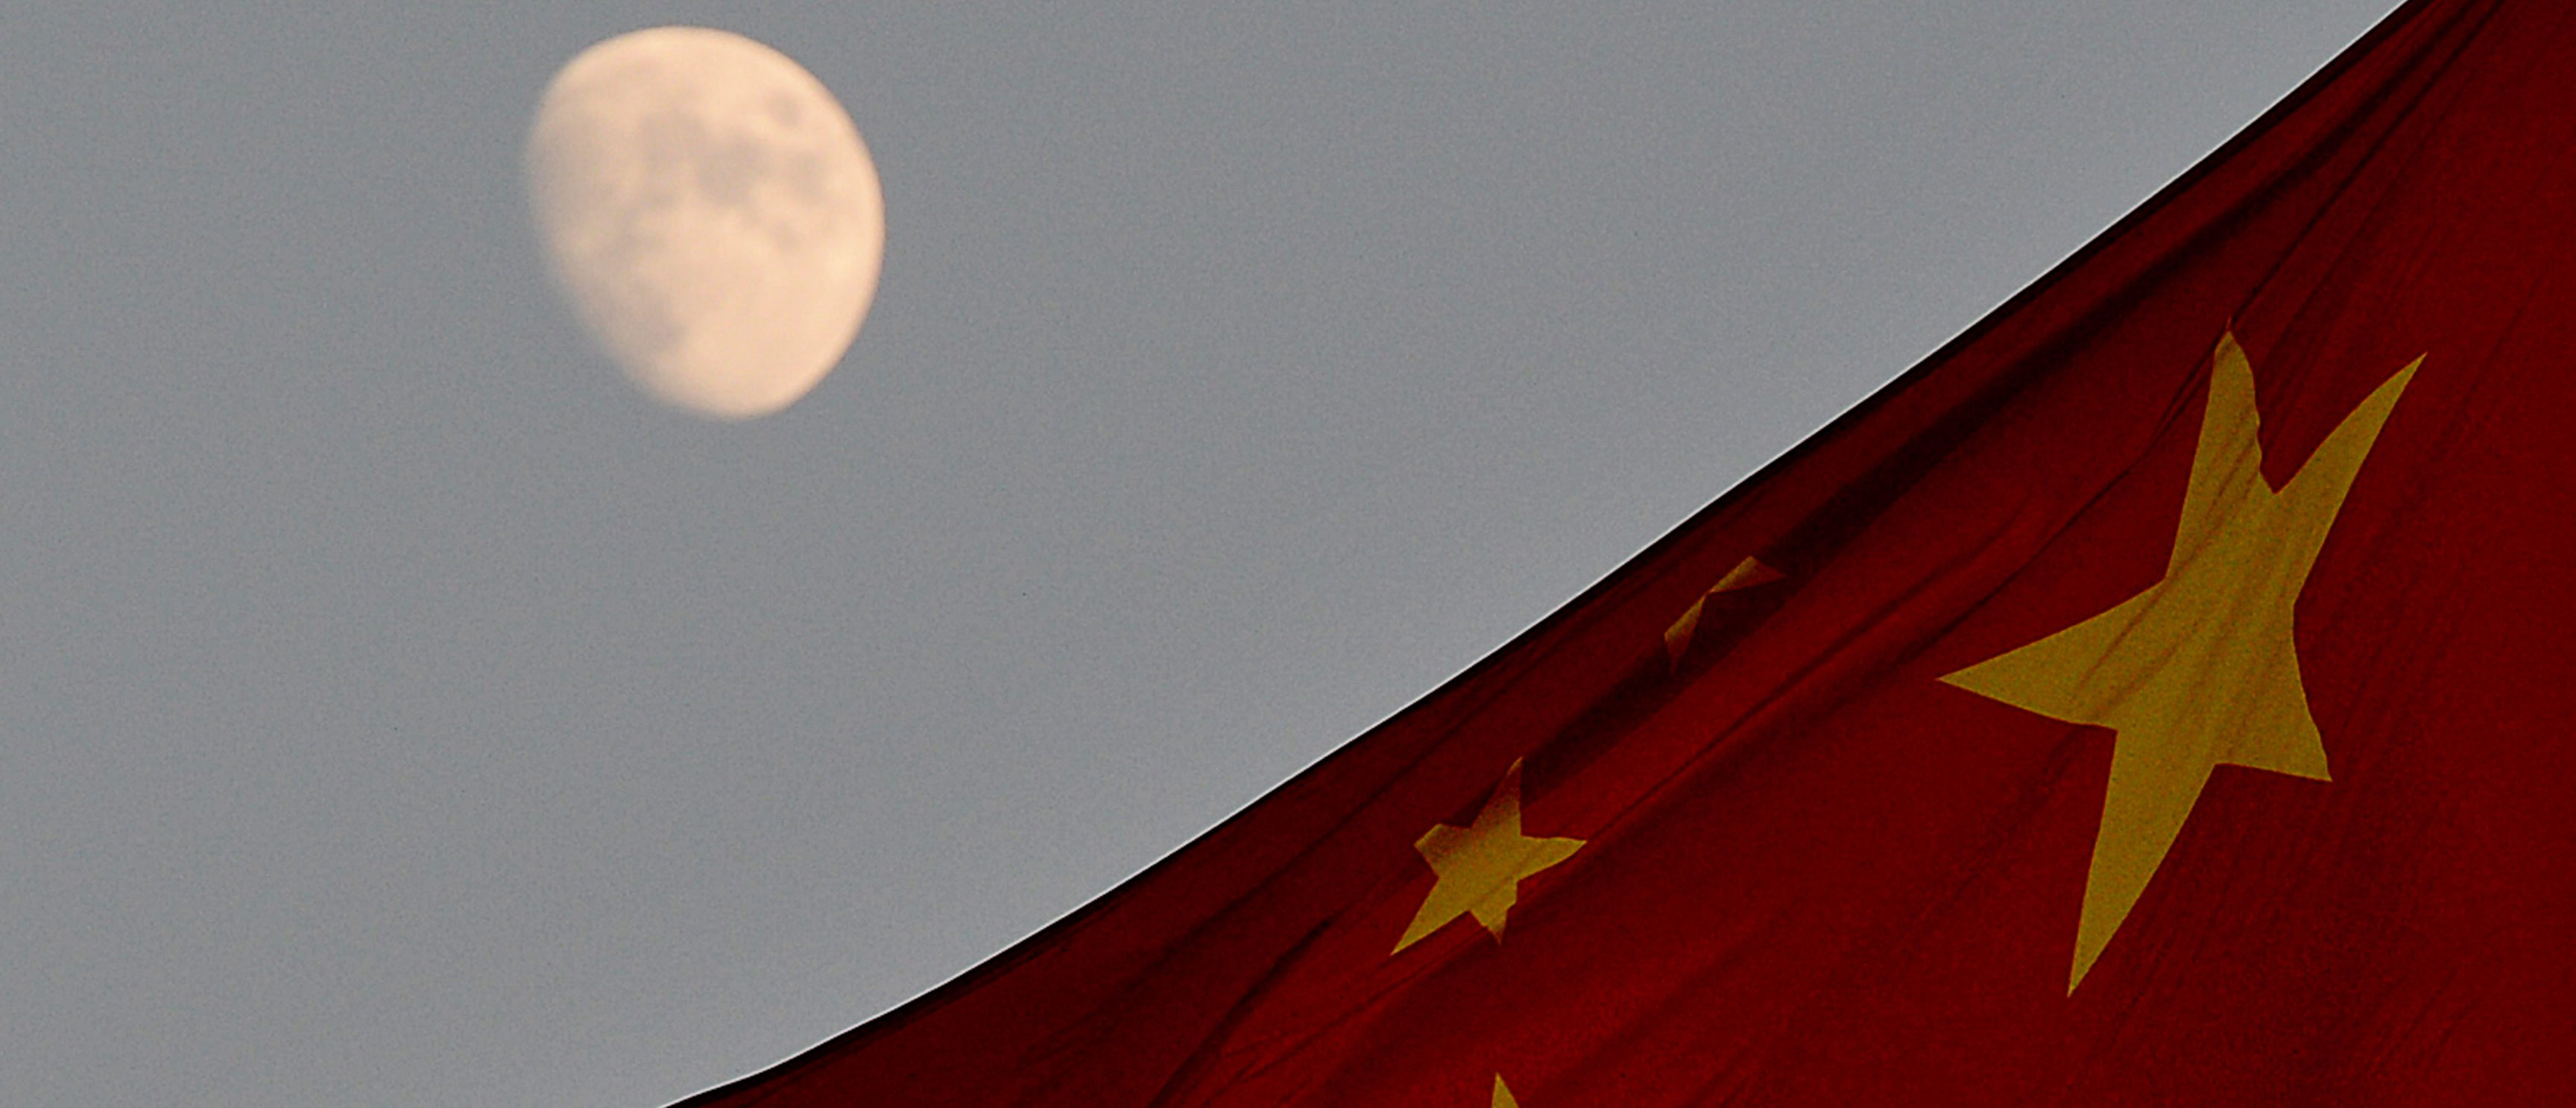 The Chinese flag is seen in front of a view of the moon at Tiananmen Square in Beijing on December 13, 2013. (Photo credit should read MARK RALSTON/AFP/Getty Images)